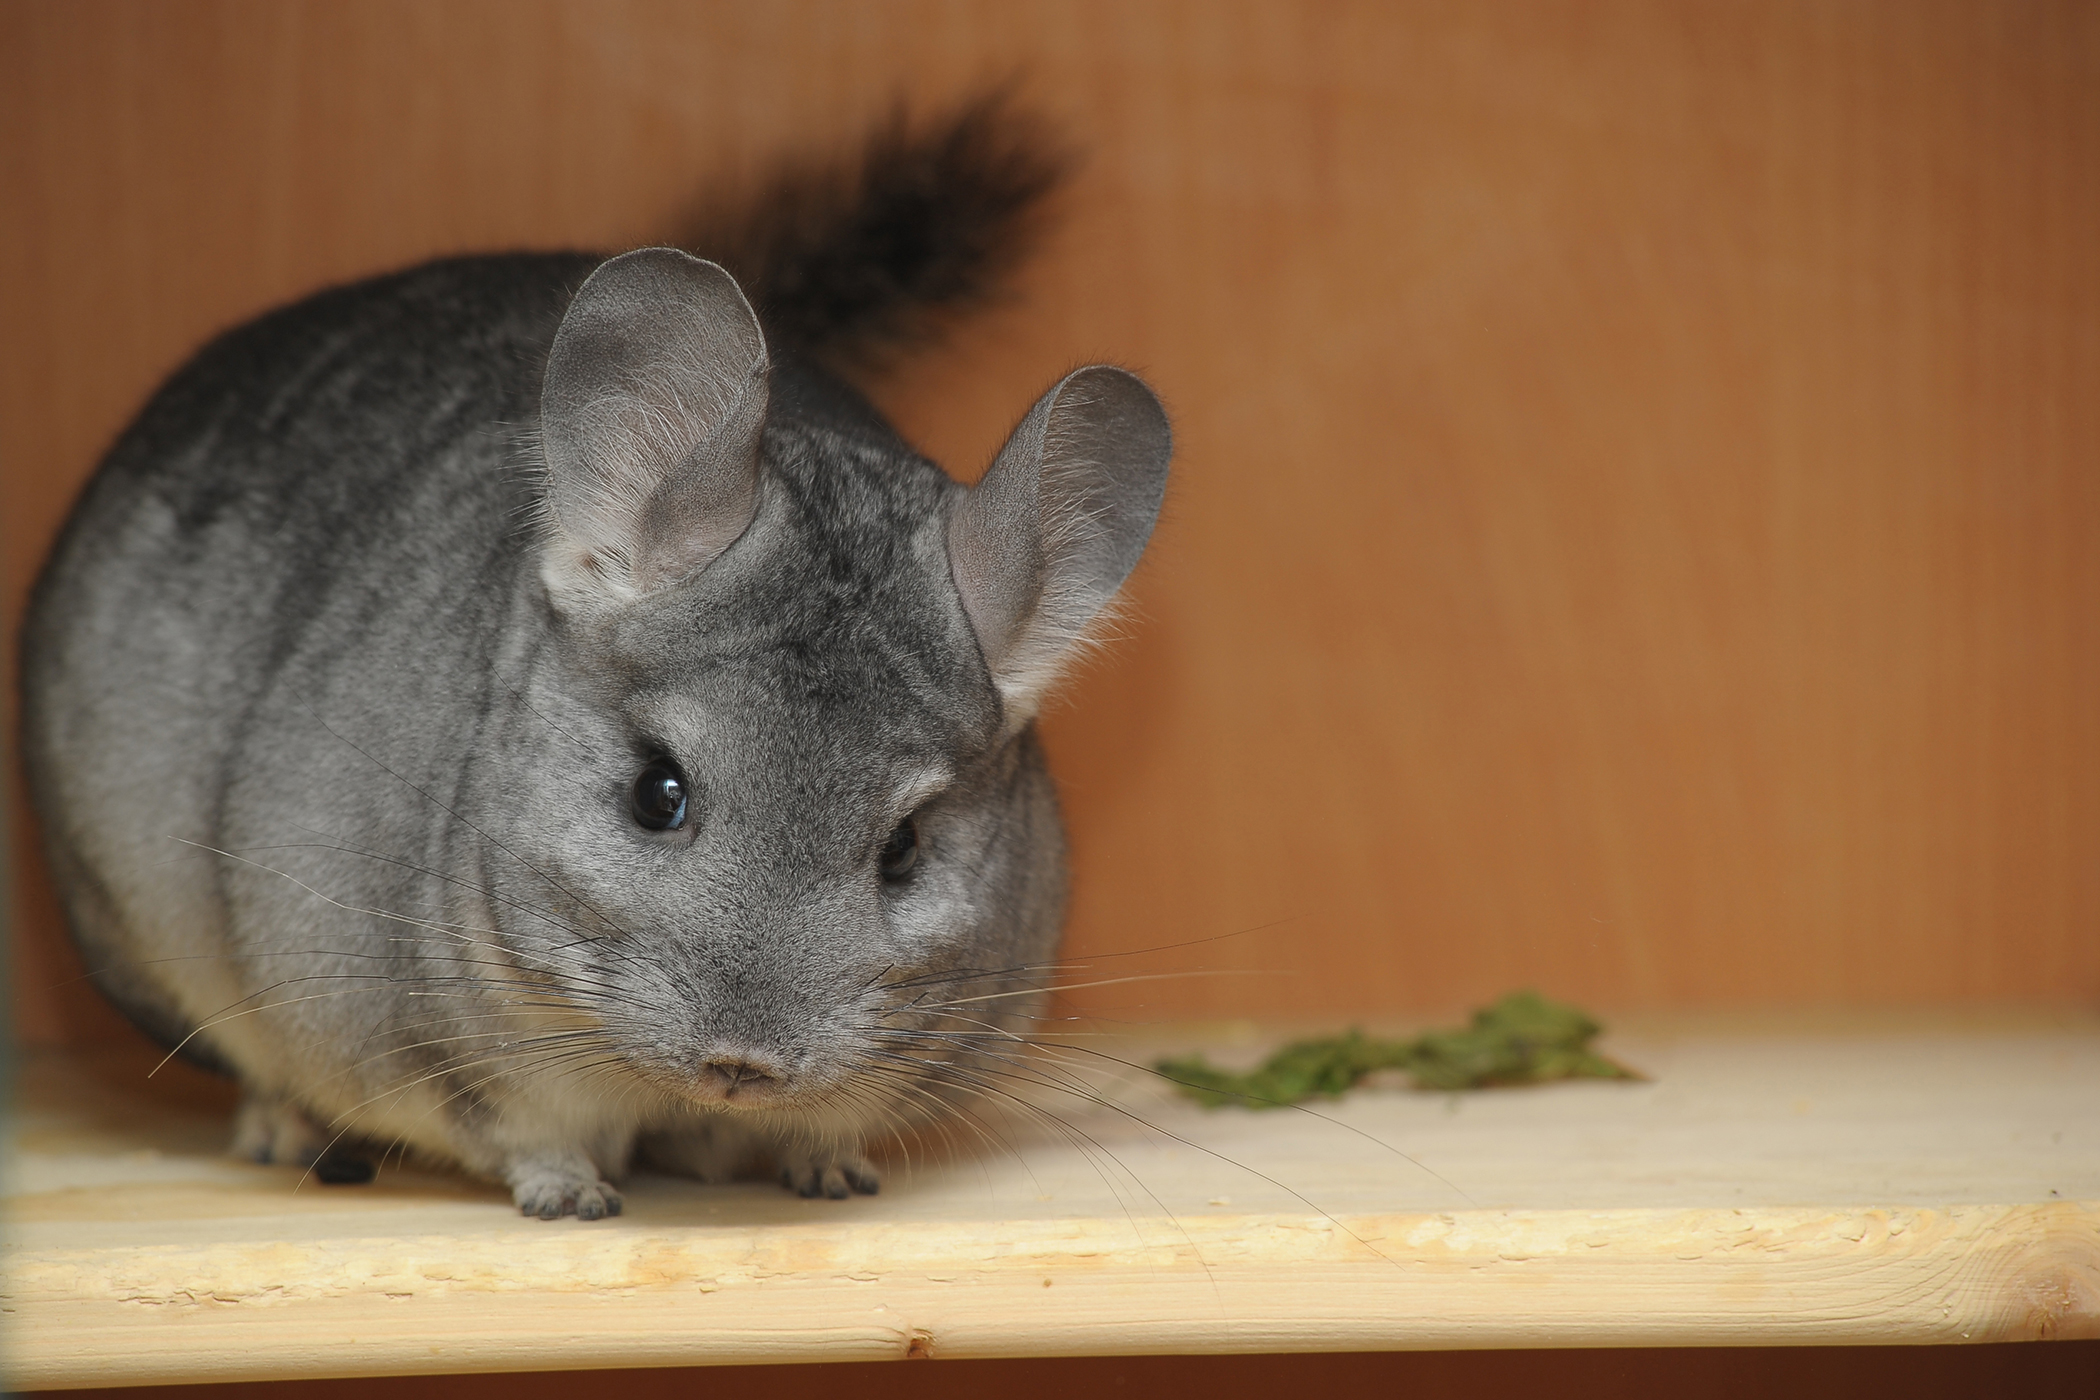 Infection and Inflammation of the Uterus in Chinchillas